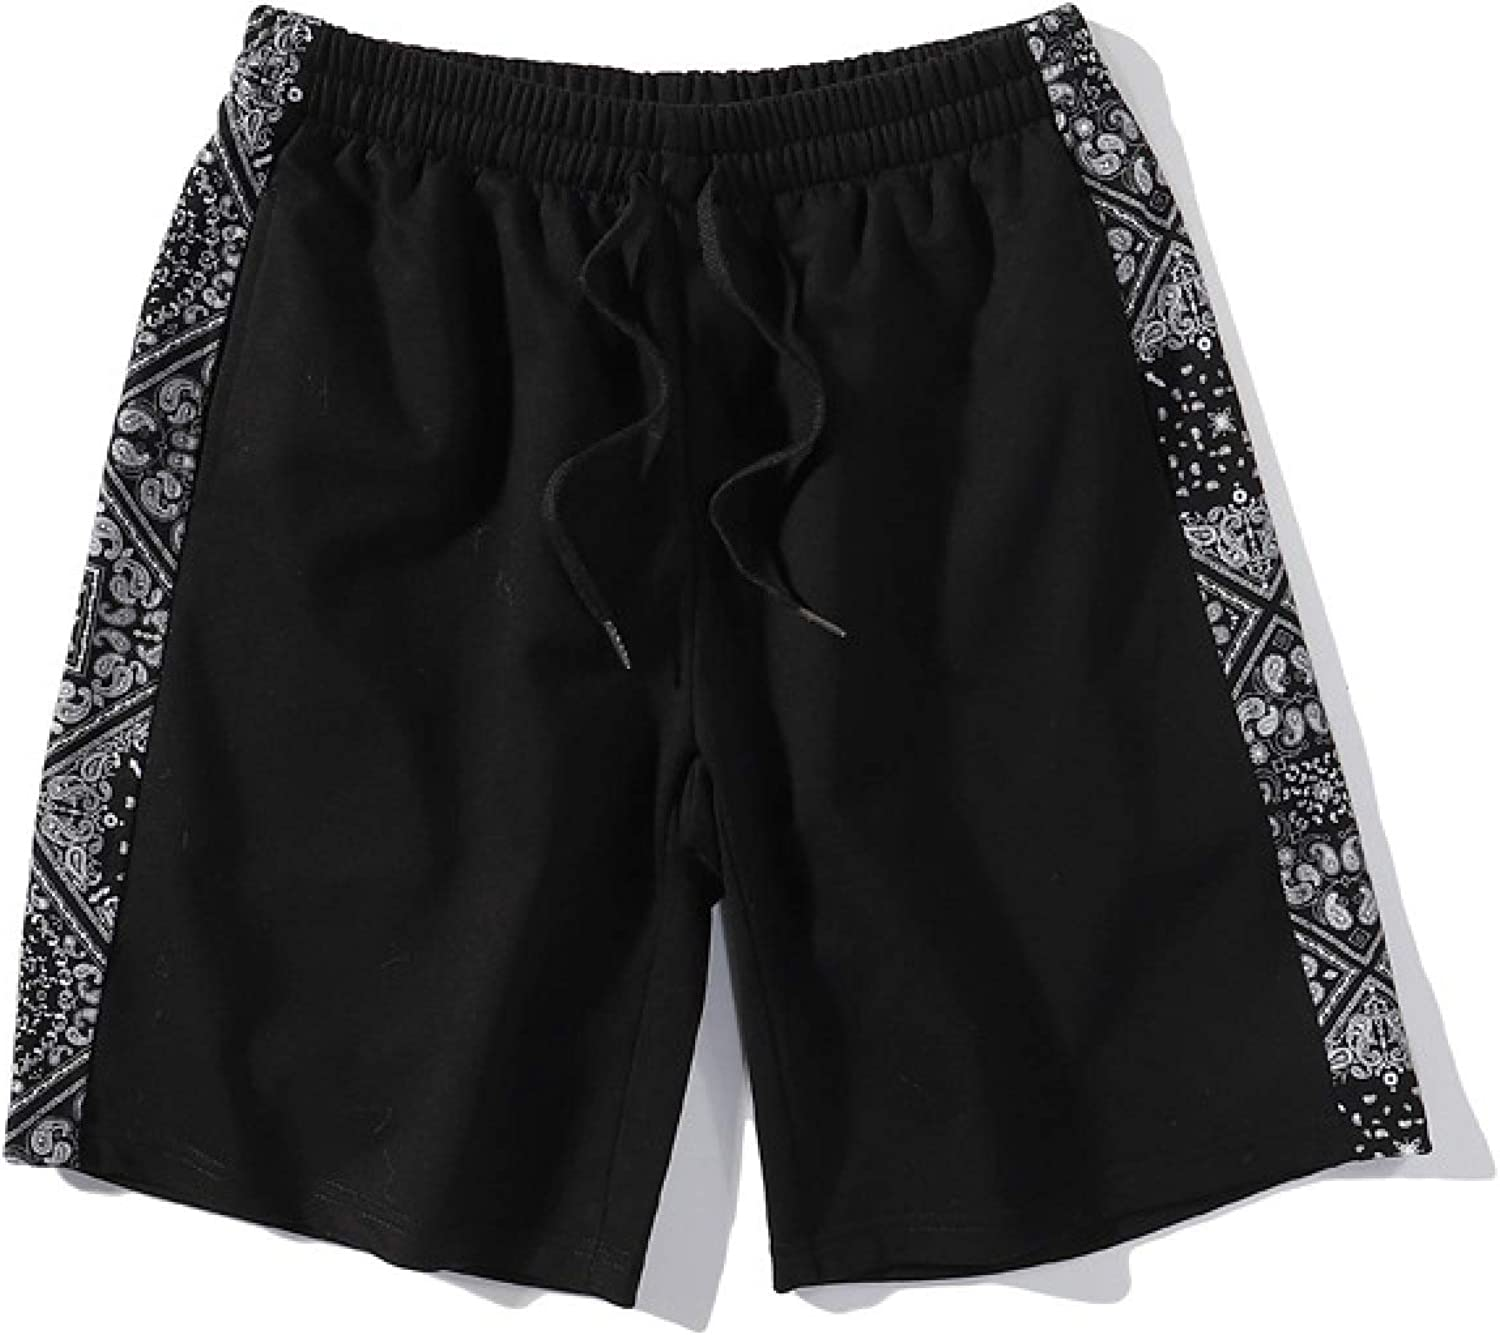 Men's Casual Shorts Summer Fashion Loose Trend All-Match Outer Wear Running